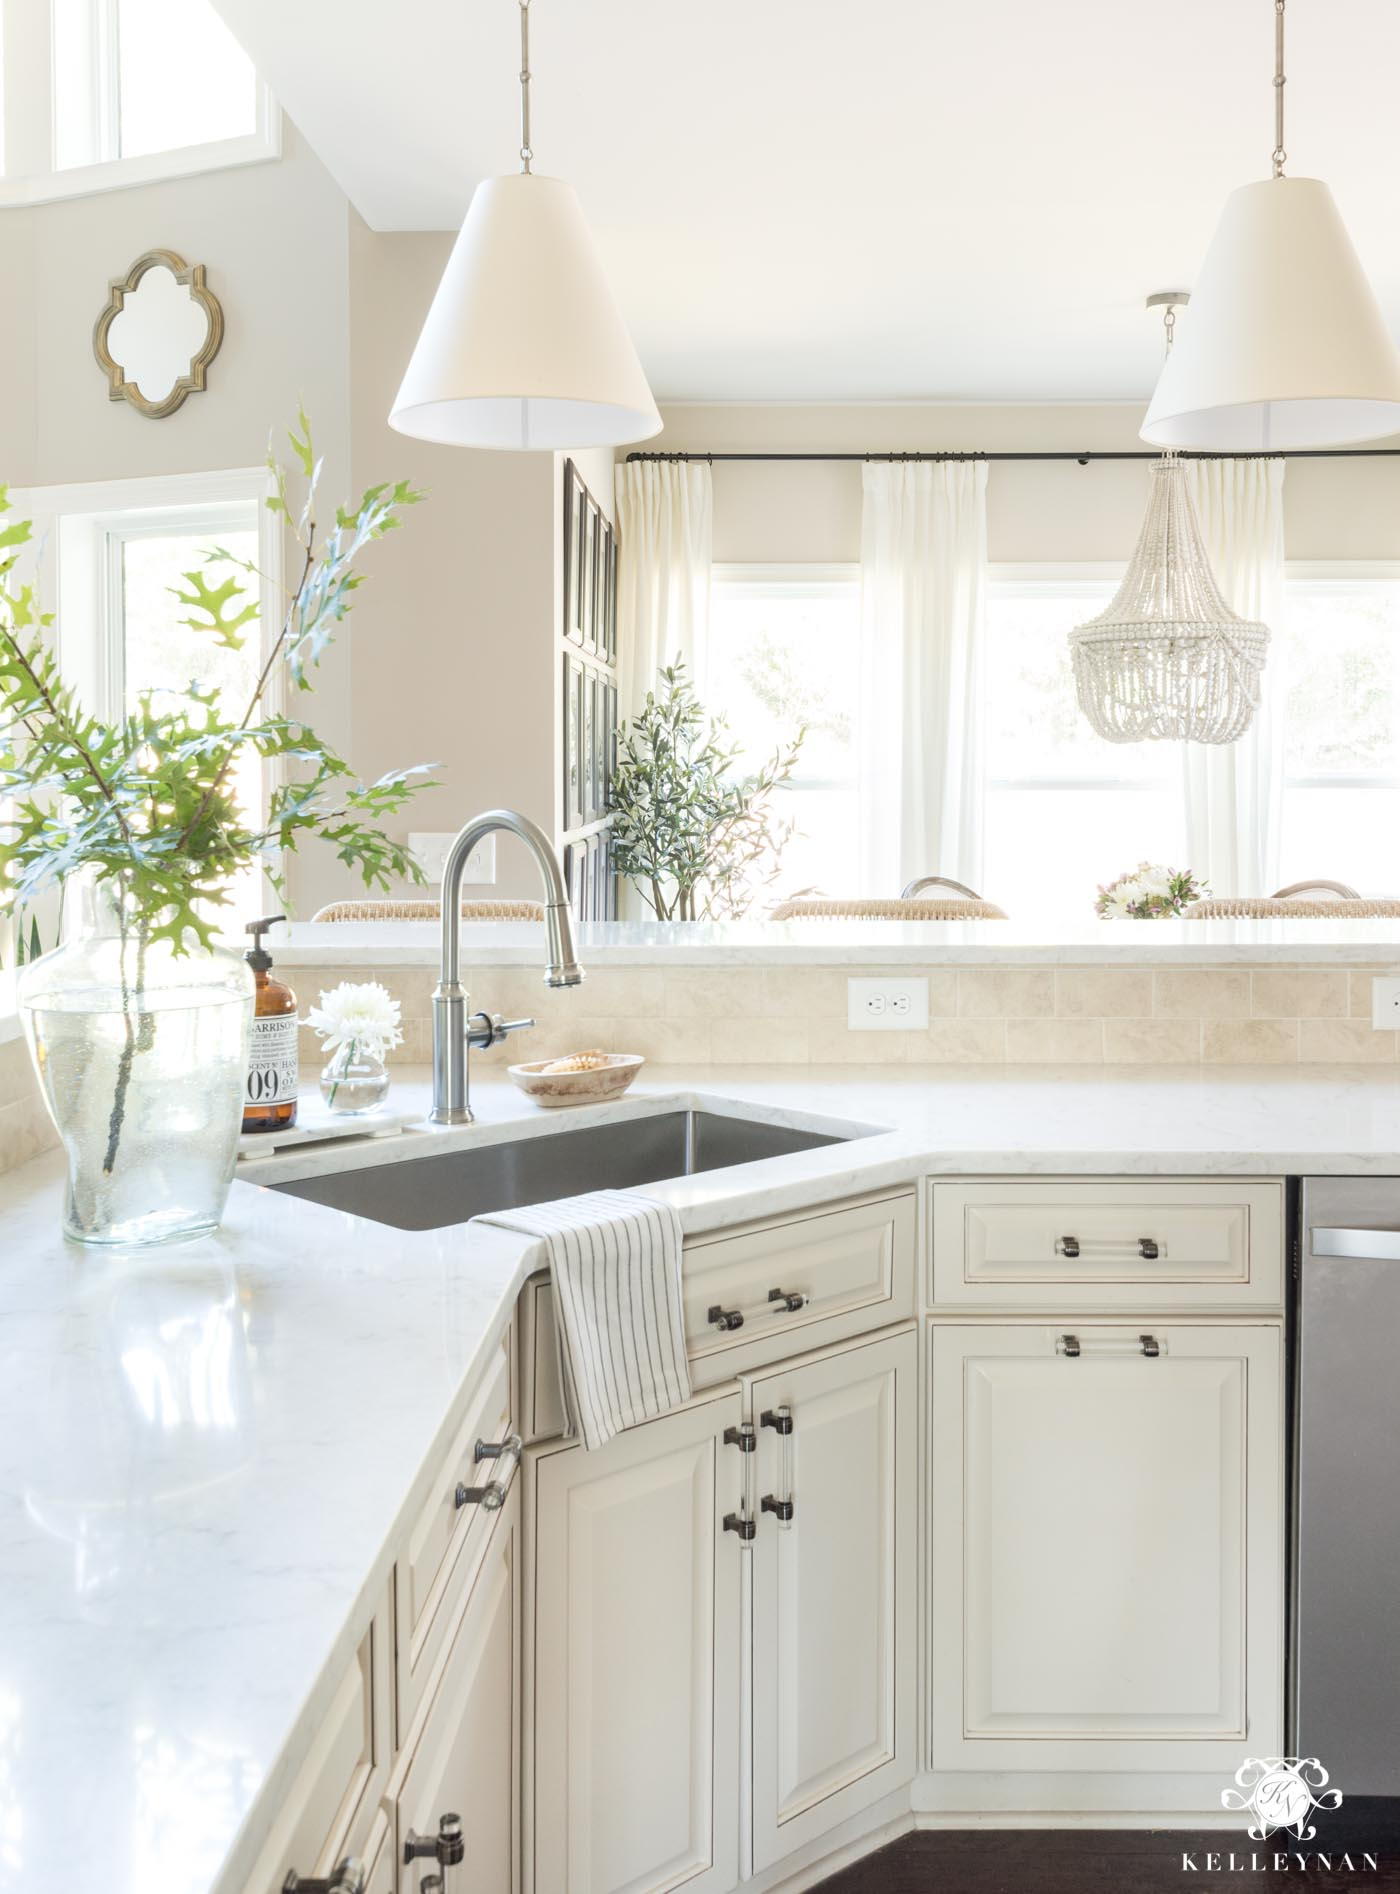 Cream kitchen cabinets with updated fixtures and more modern finishes